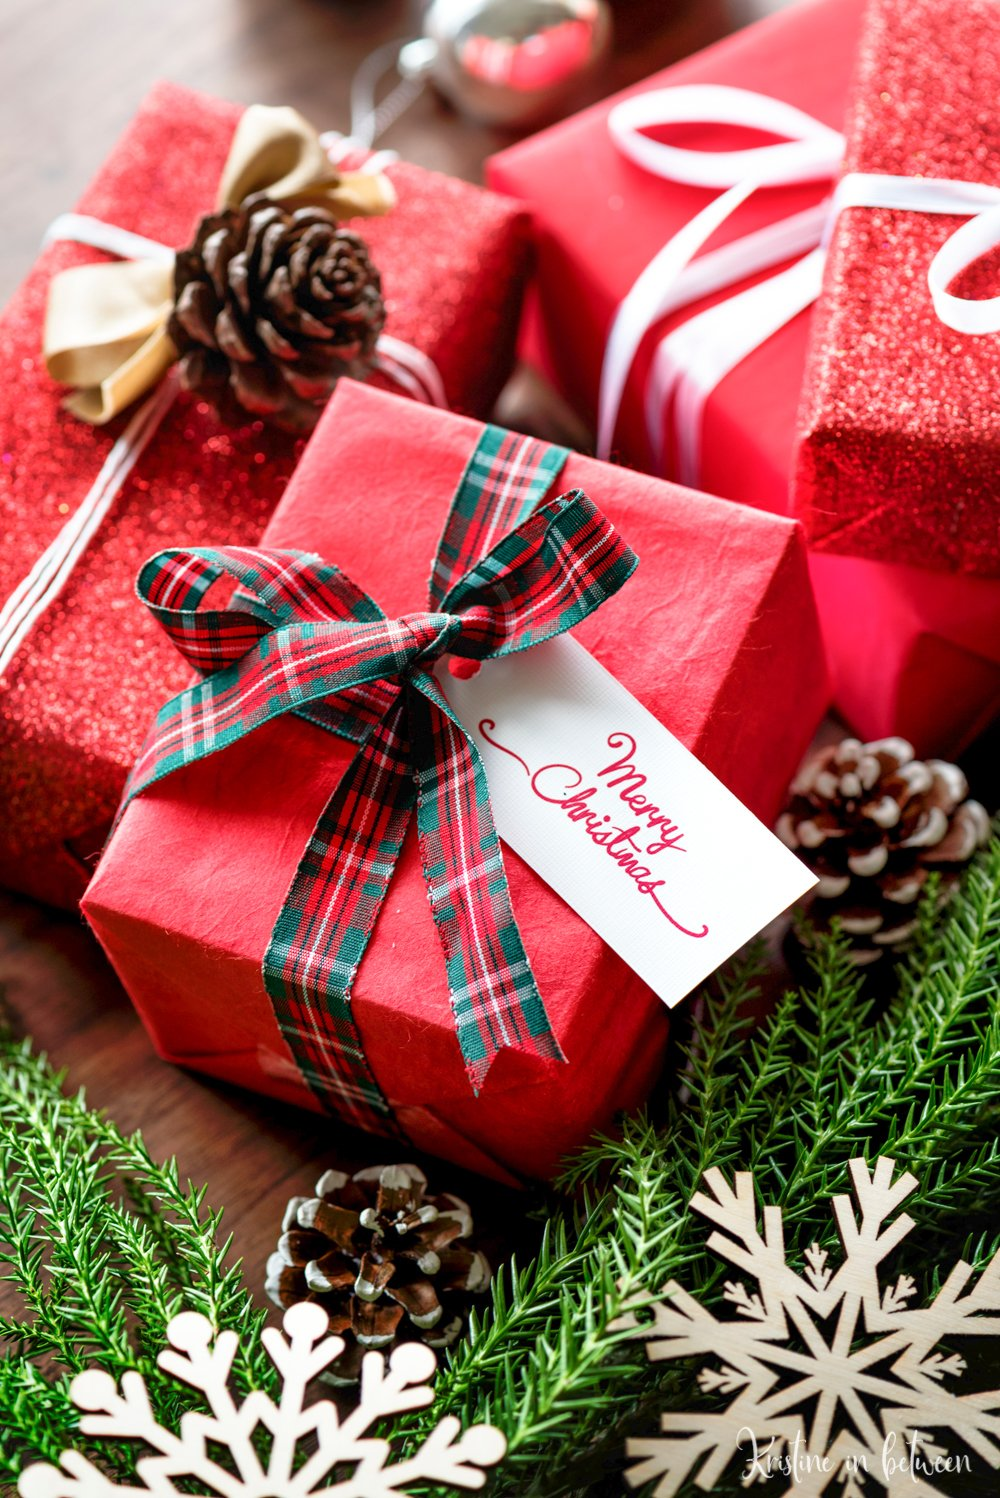 Awesome gift wrapping tricks for people who hate wrapping! Save time and have beautiful gifts this year!